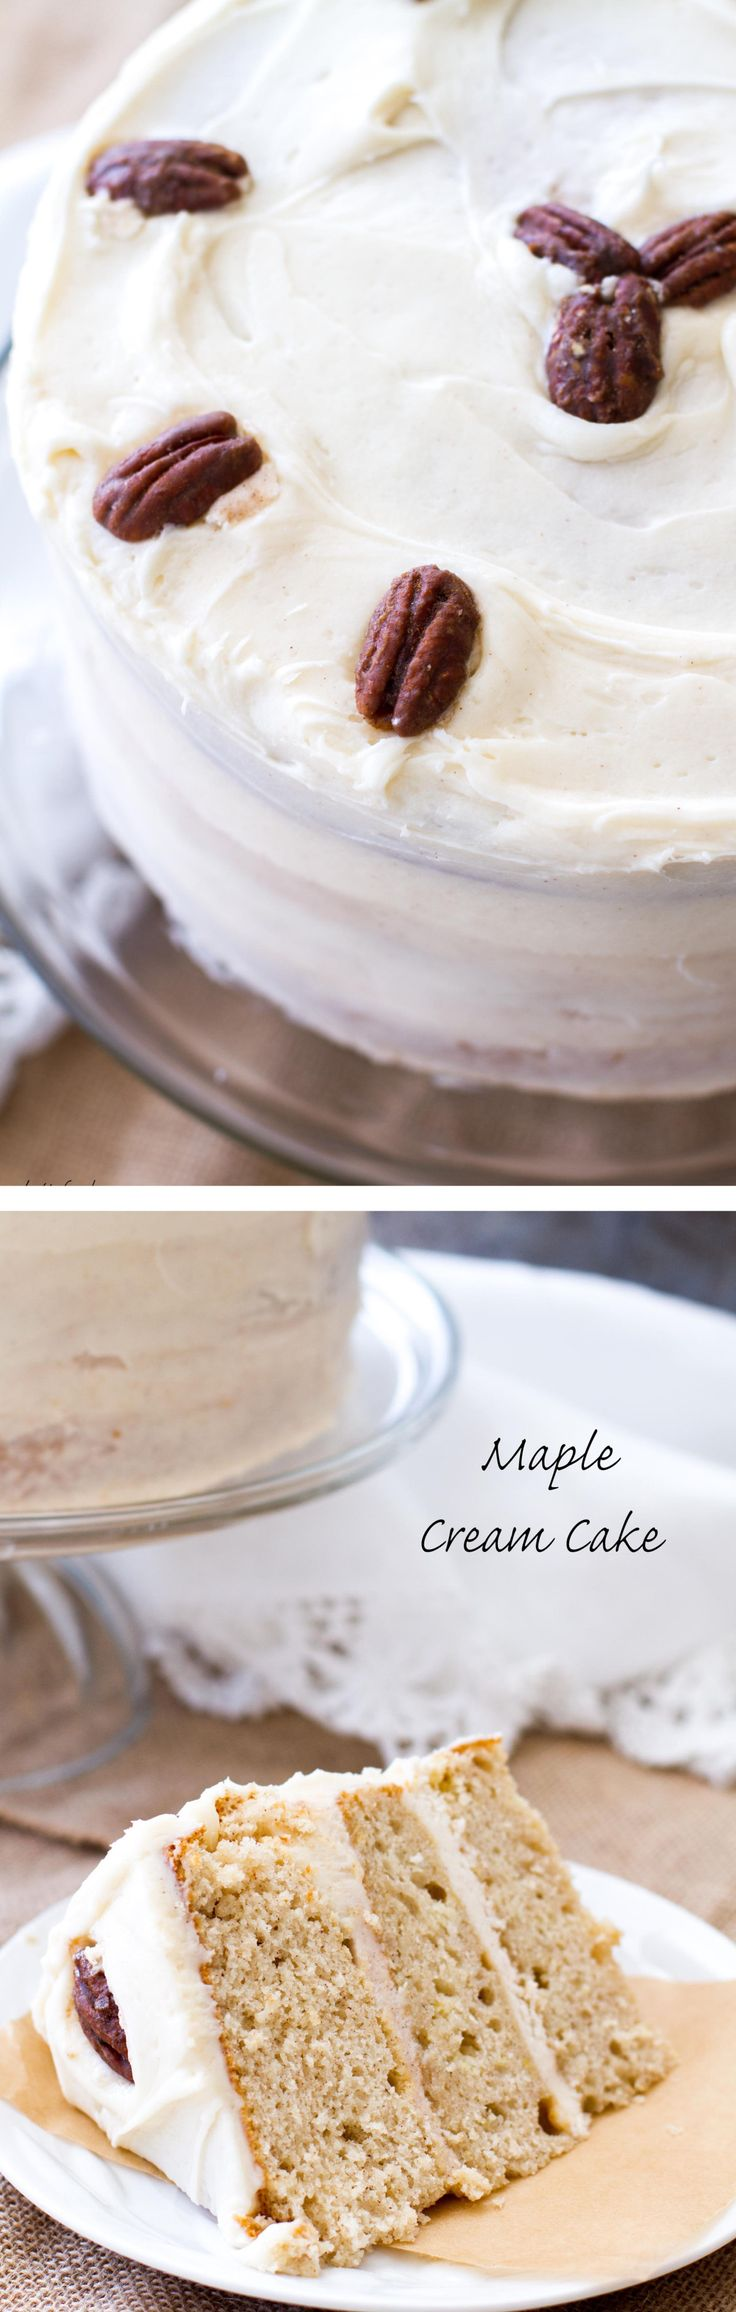 This maple cream cake recipe uses cake mix as a base to make a stunning yet simple cake!